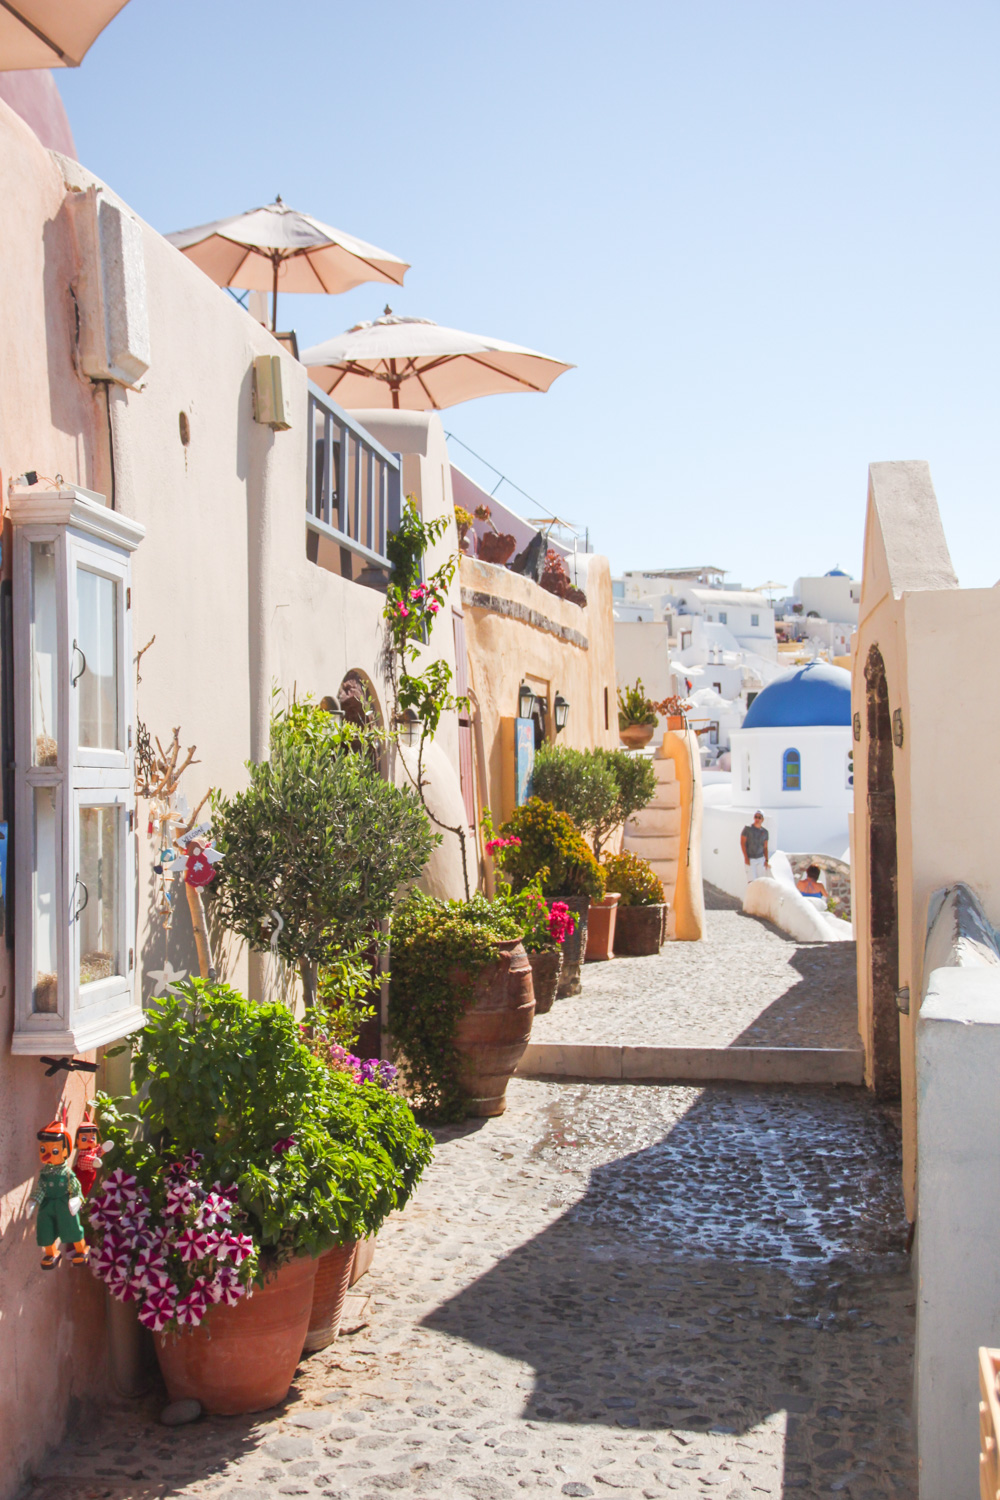 The Streets of Oia, Santorini